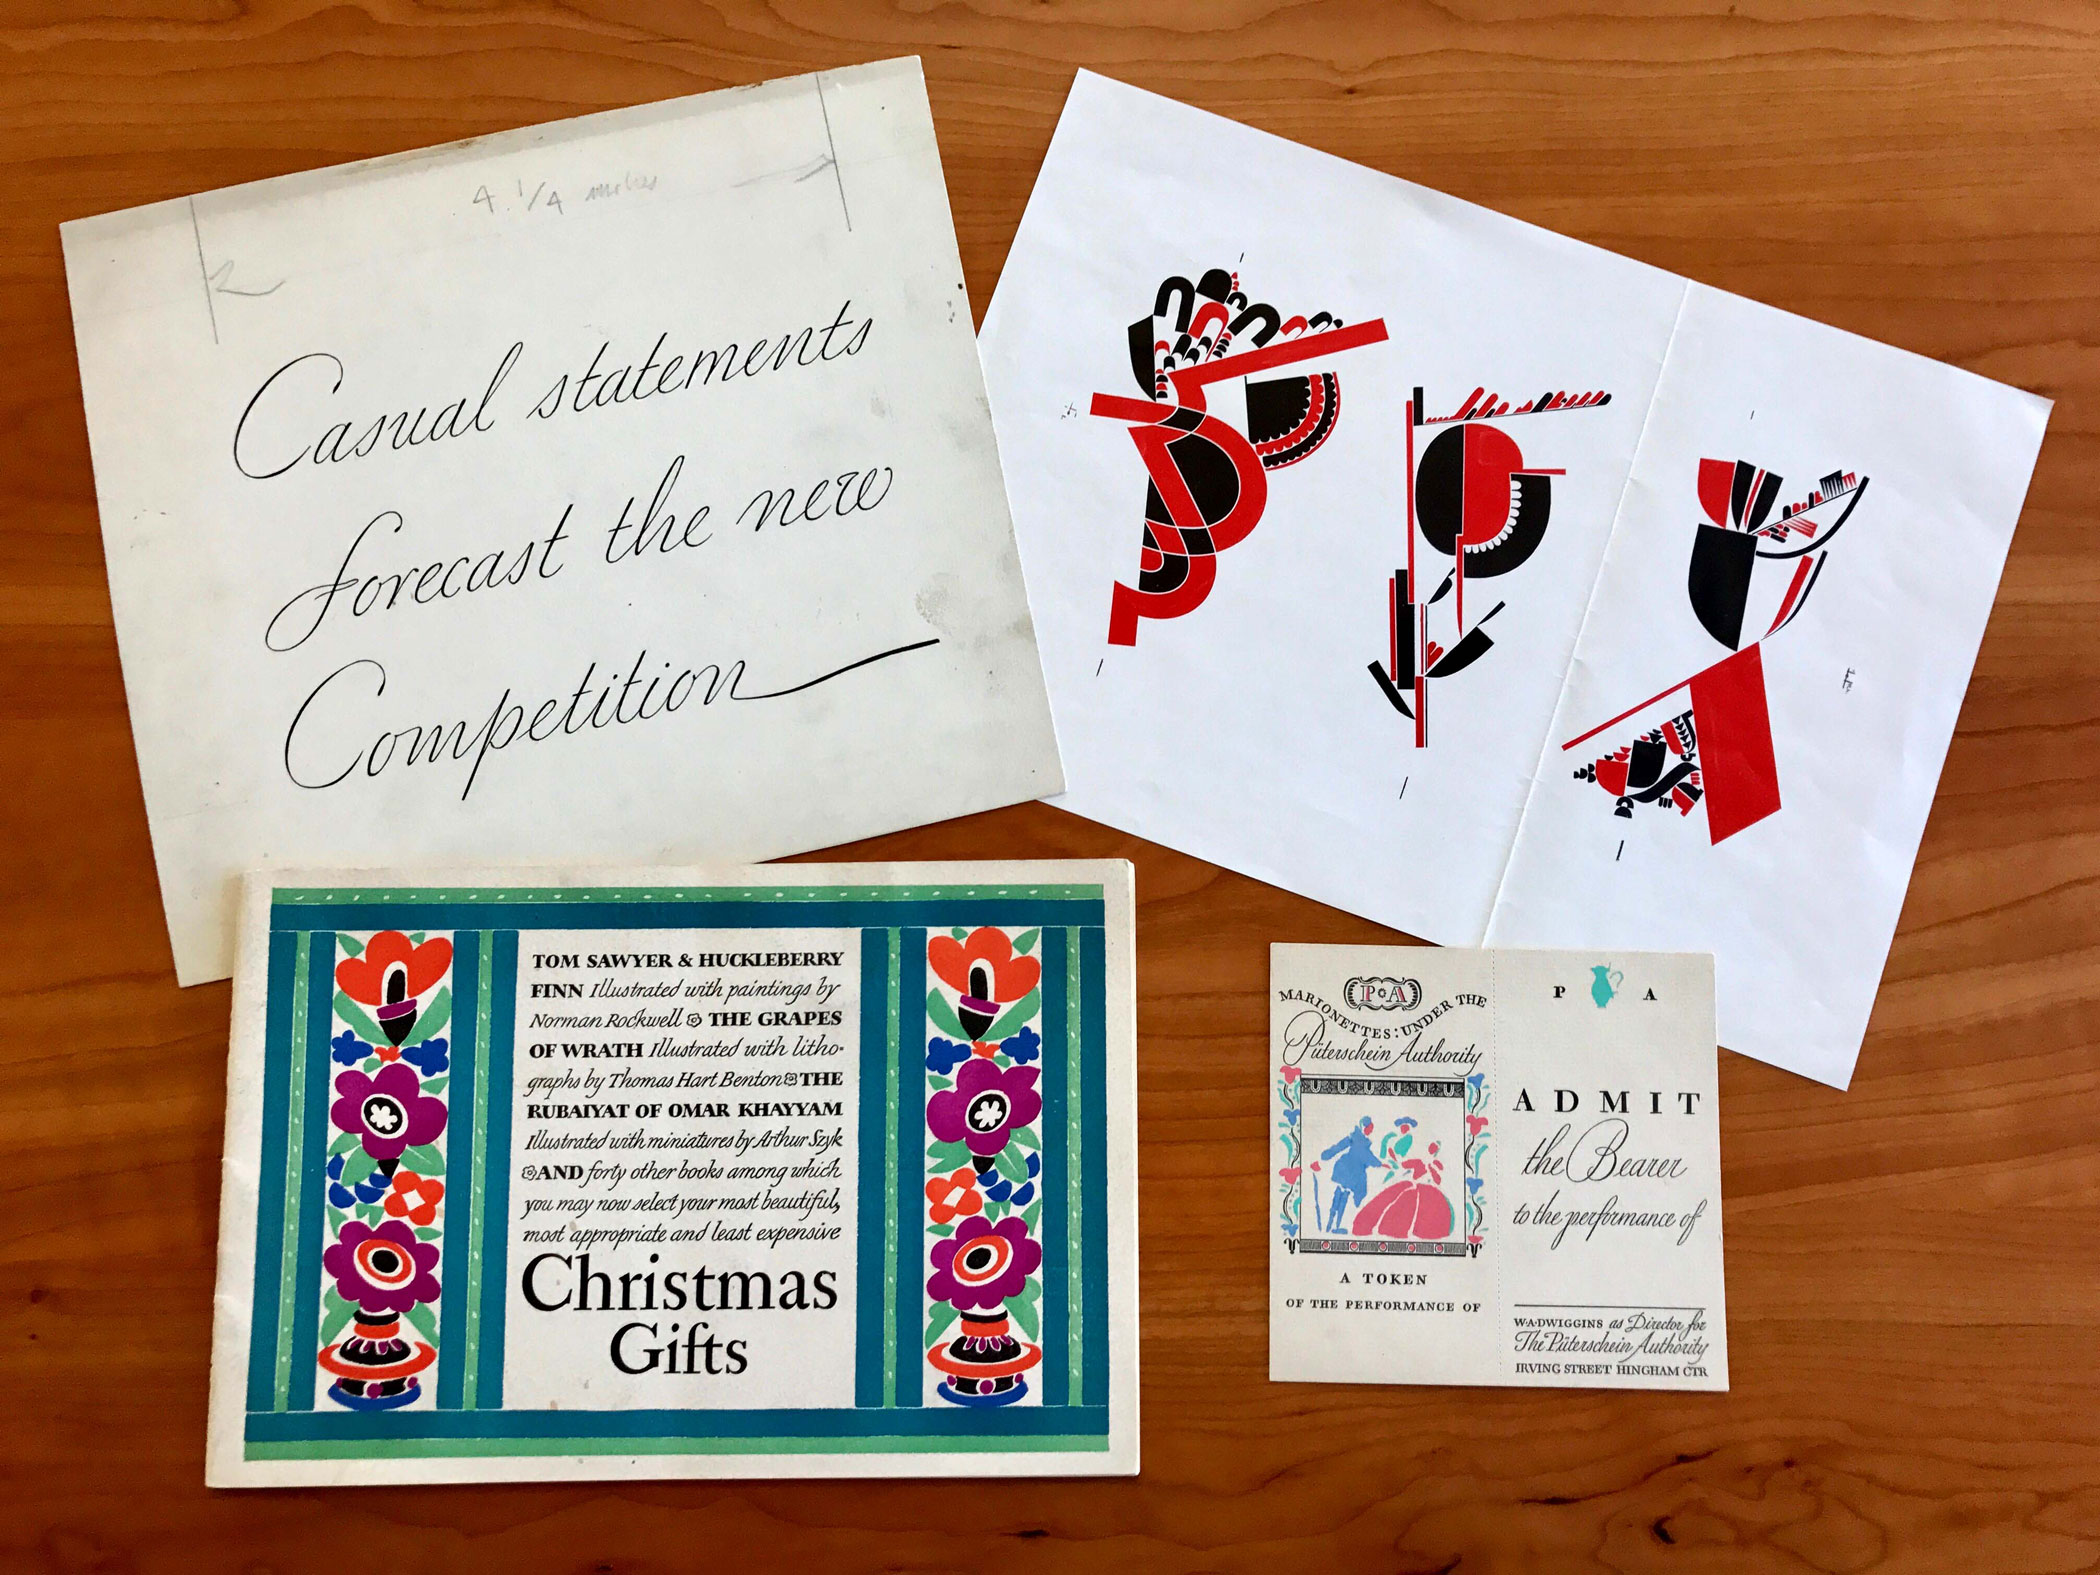 W. A. Dwiggins Pop-up Exhibition